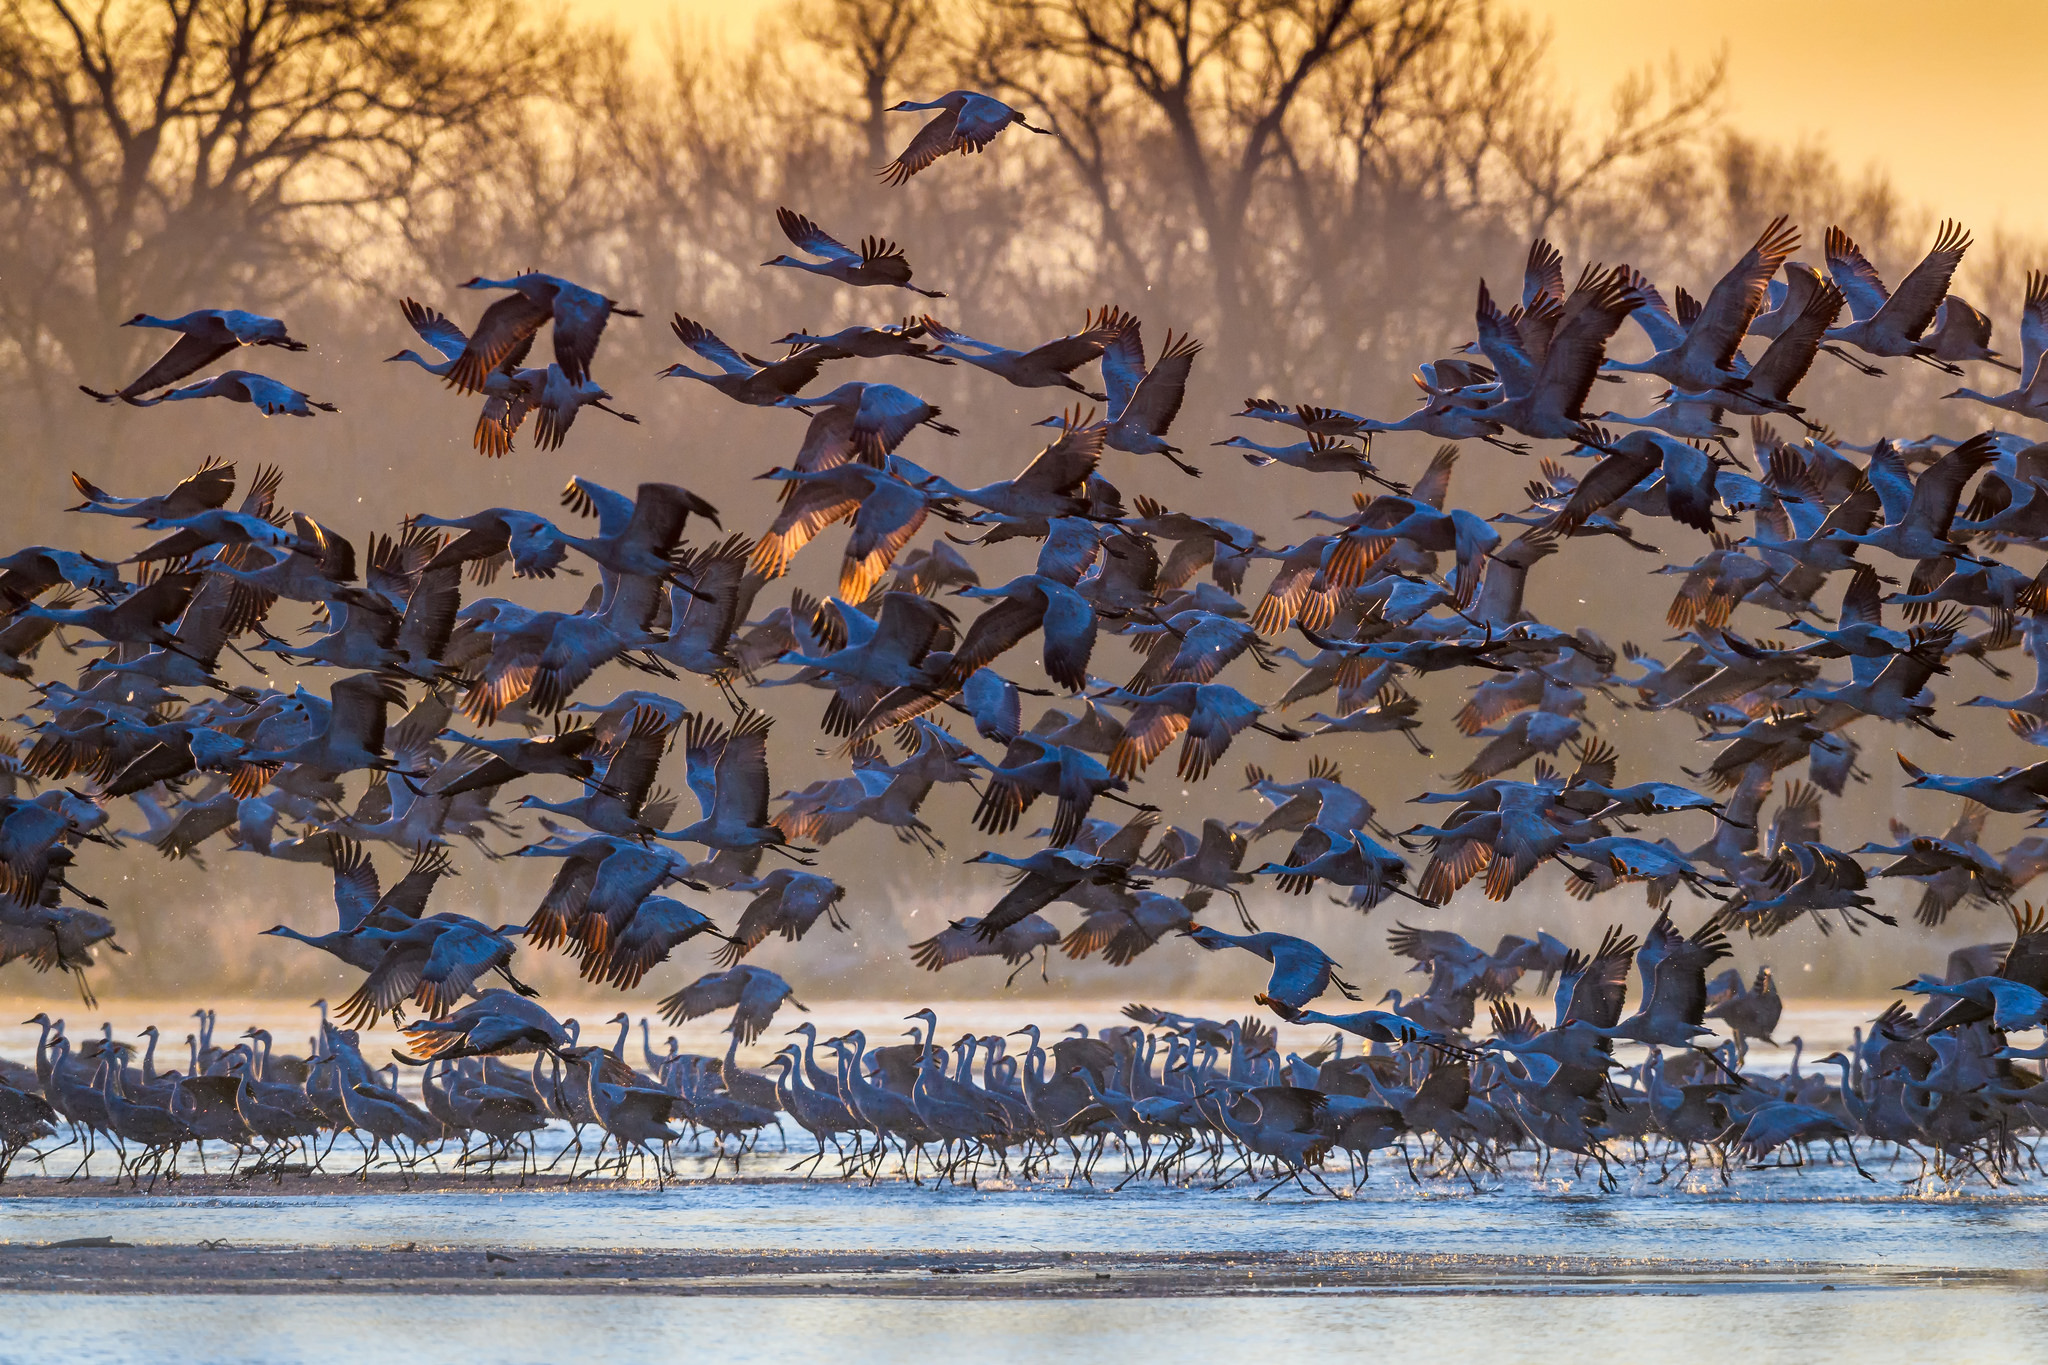 Sandhill cranes at sunrise on the Platte River near Kearney, Nebraska. Photo by Diana Robinson, FCC